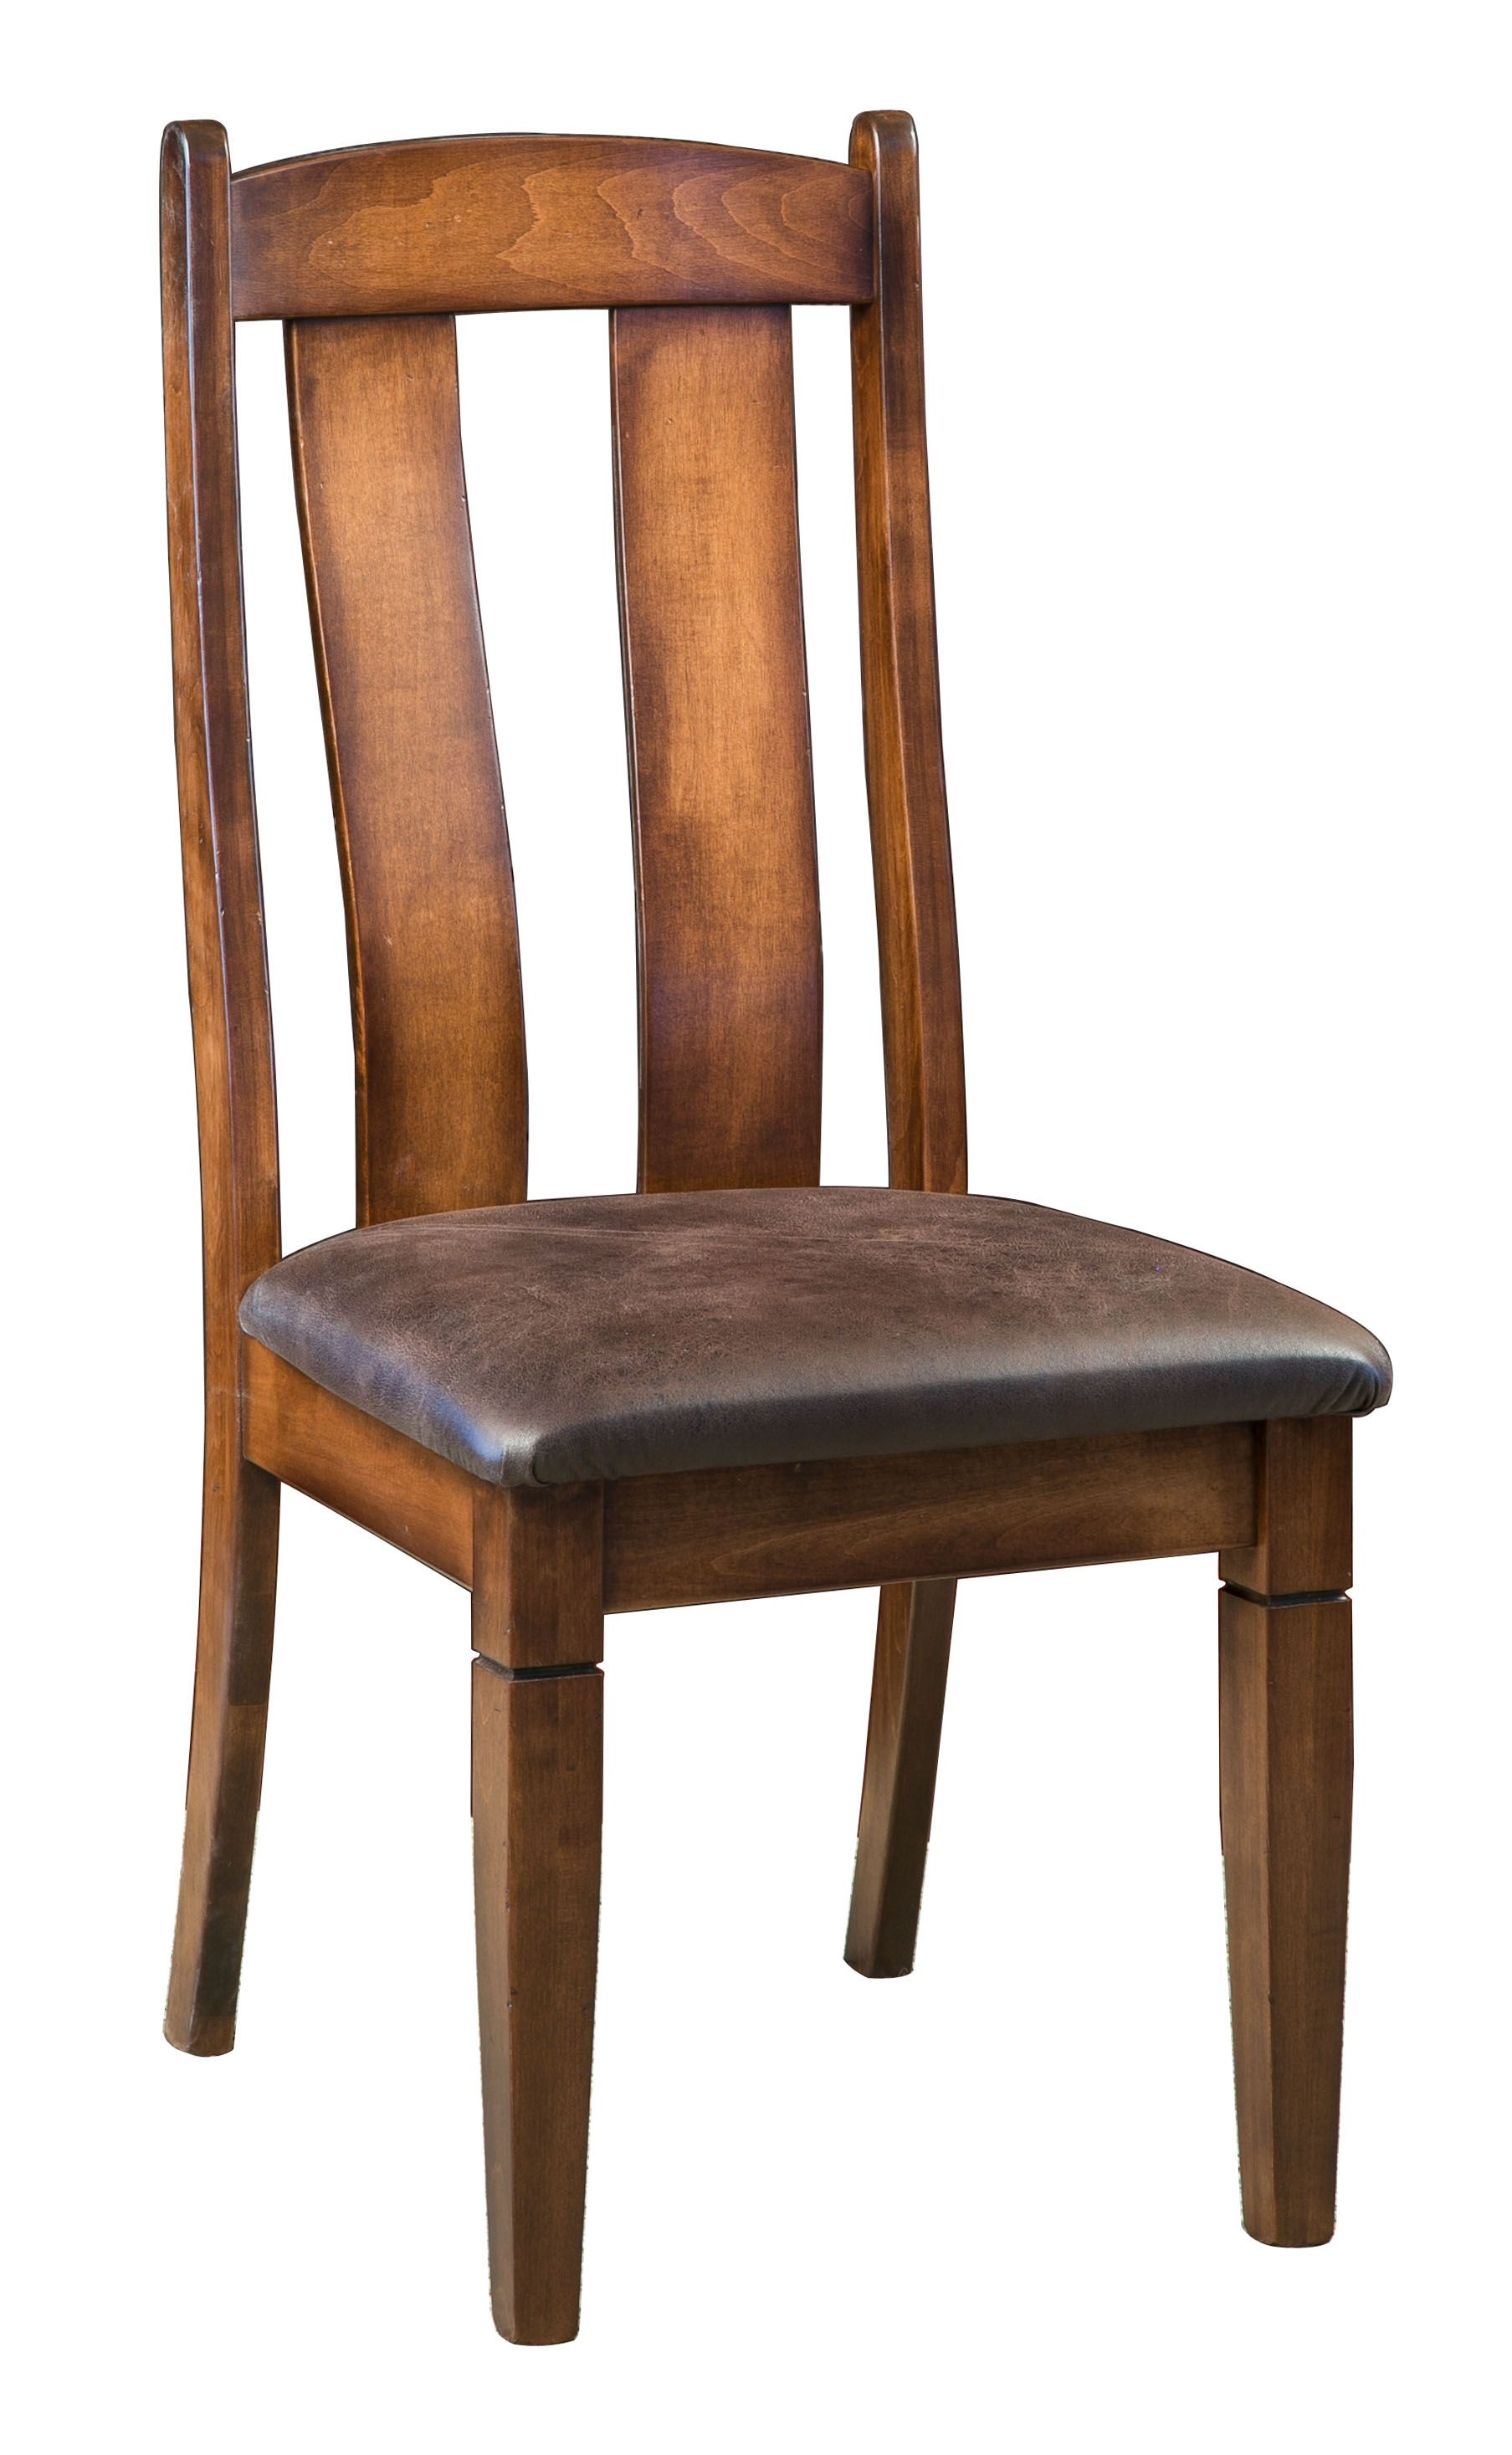 Attractive These Solid Wood Amish Chairs Have A Mission Style That Will Remain  Timeless In Your Home Decor.